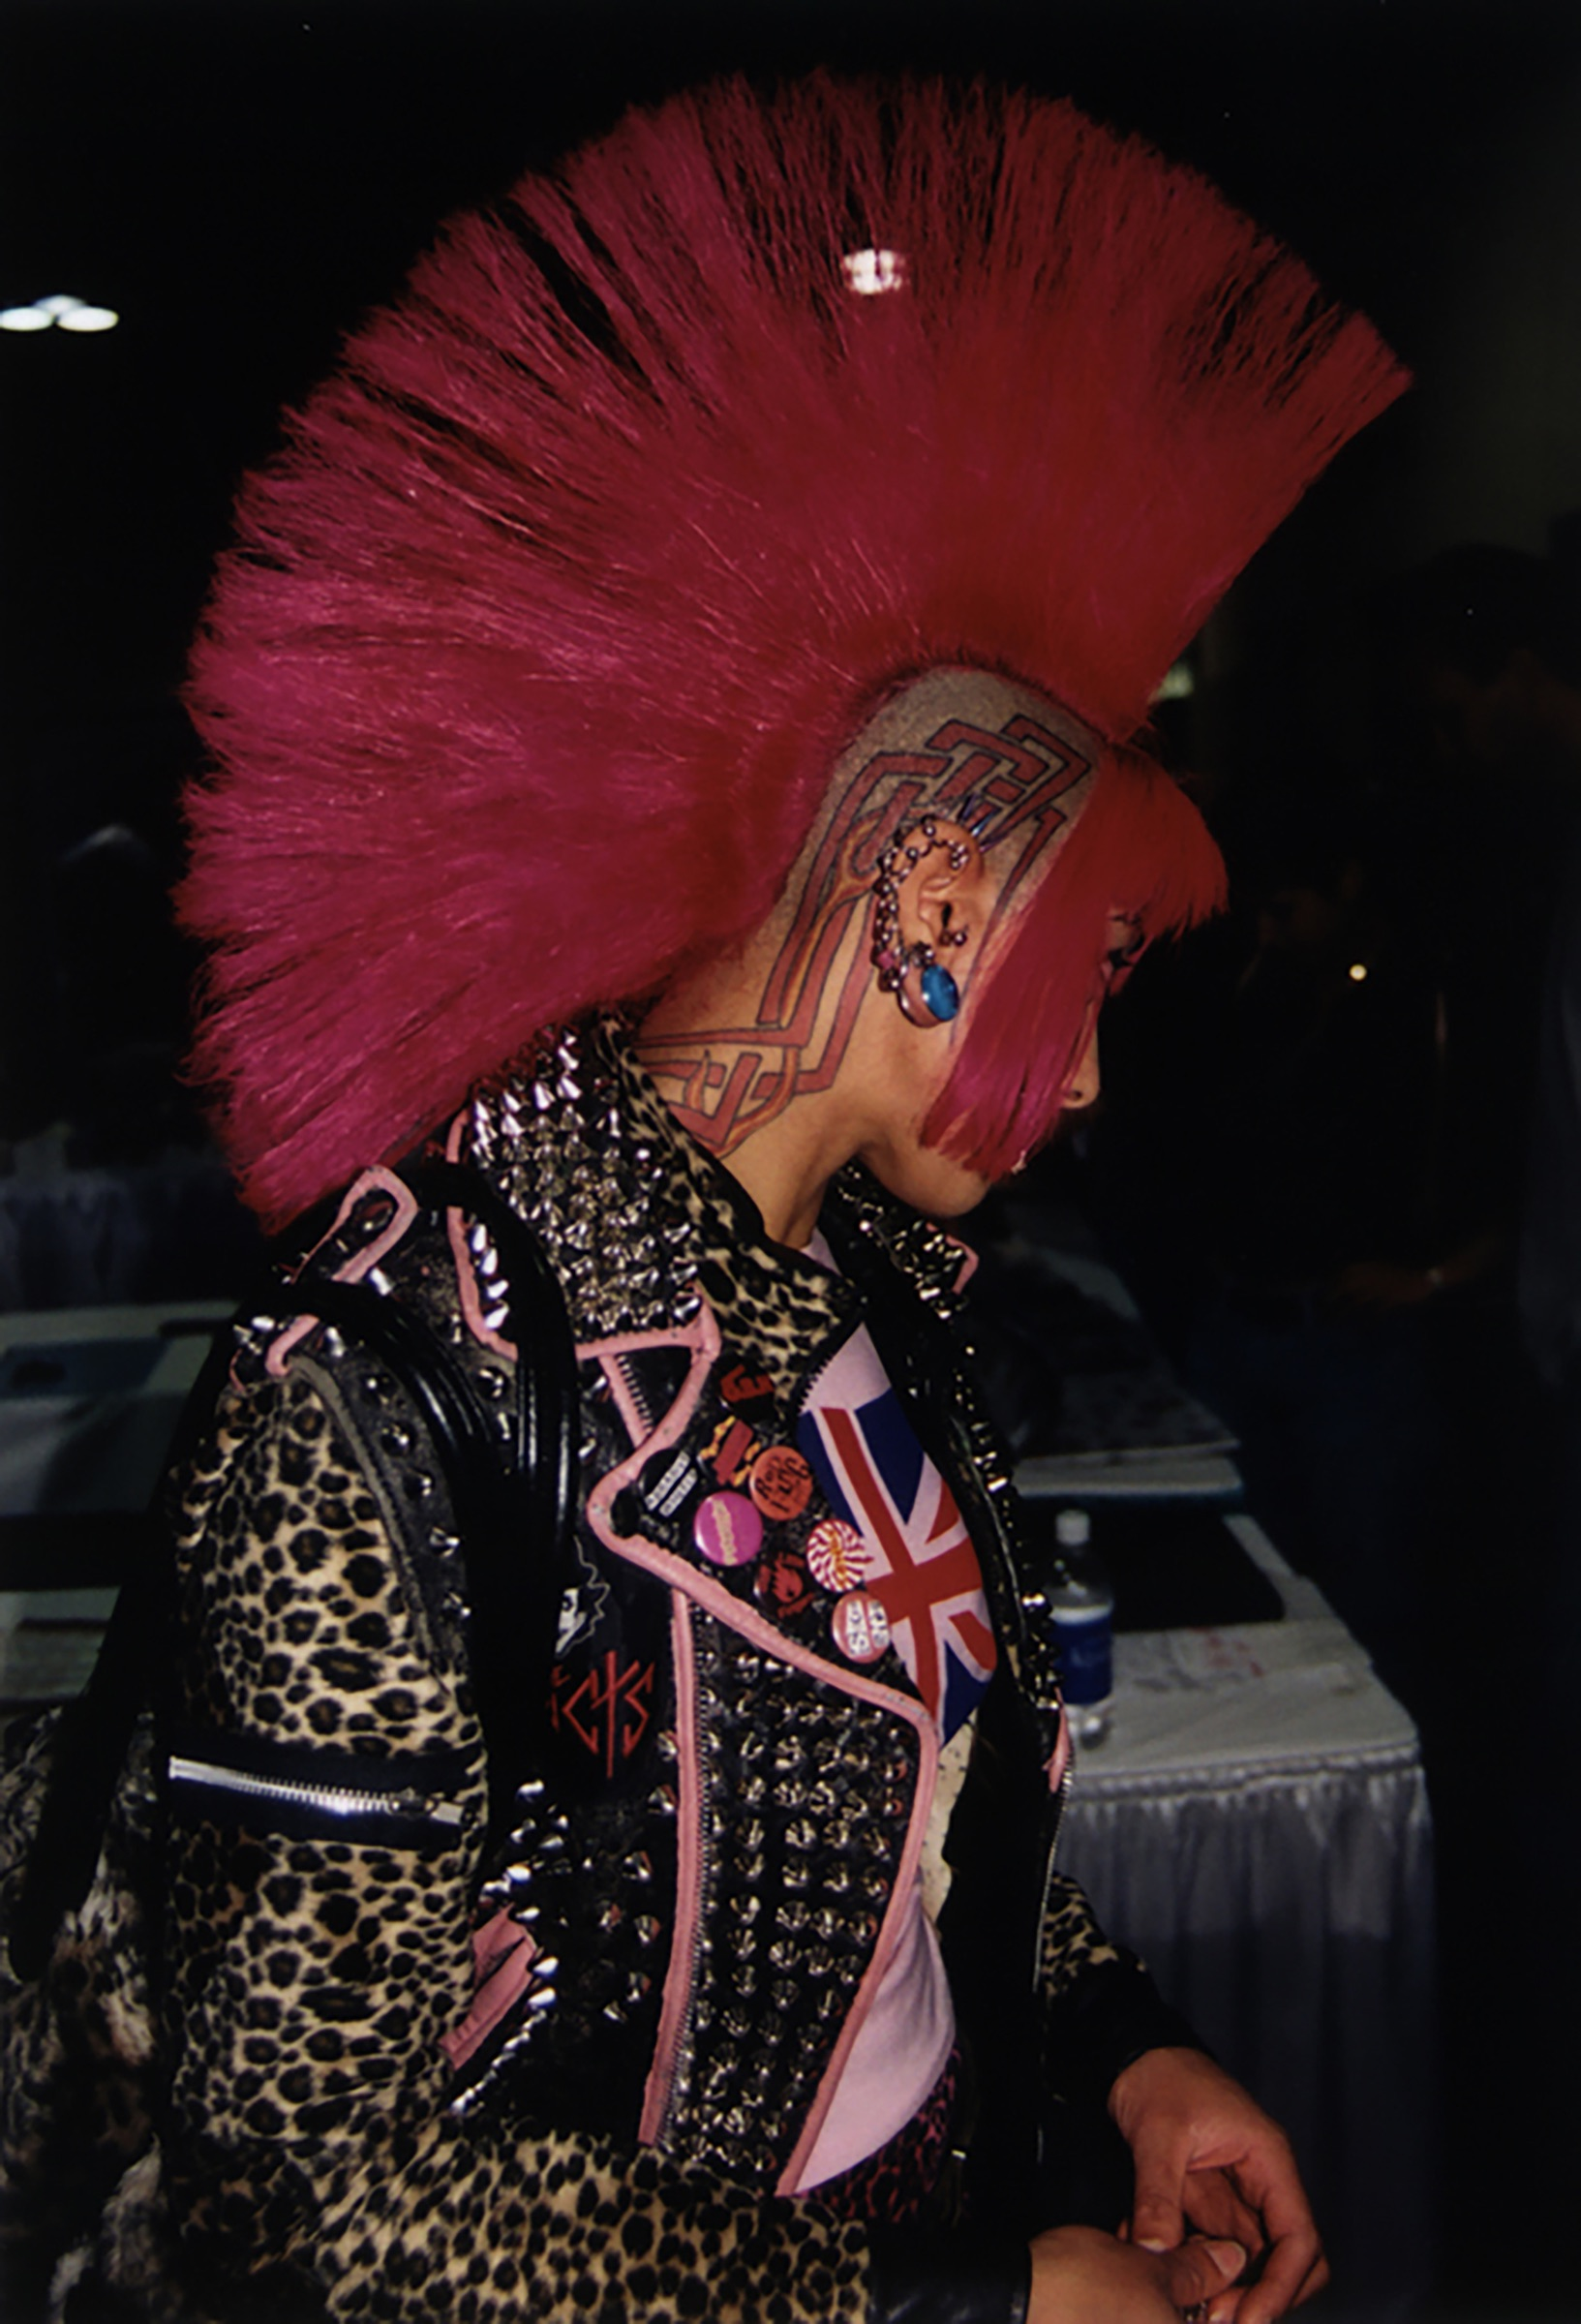 p-SoHO17 Punk girl